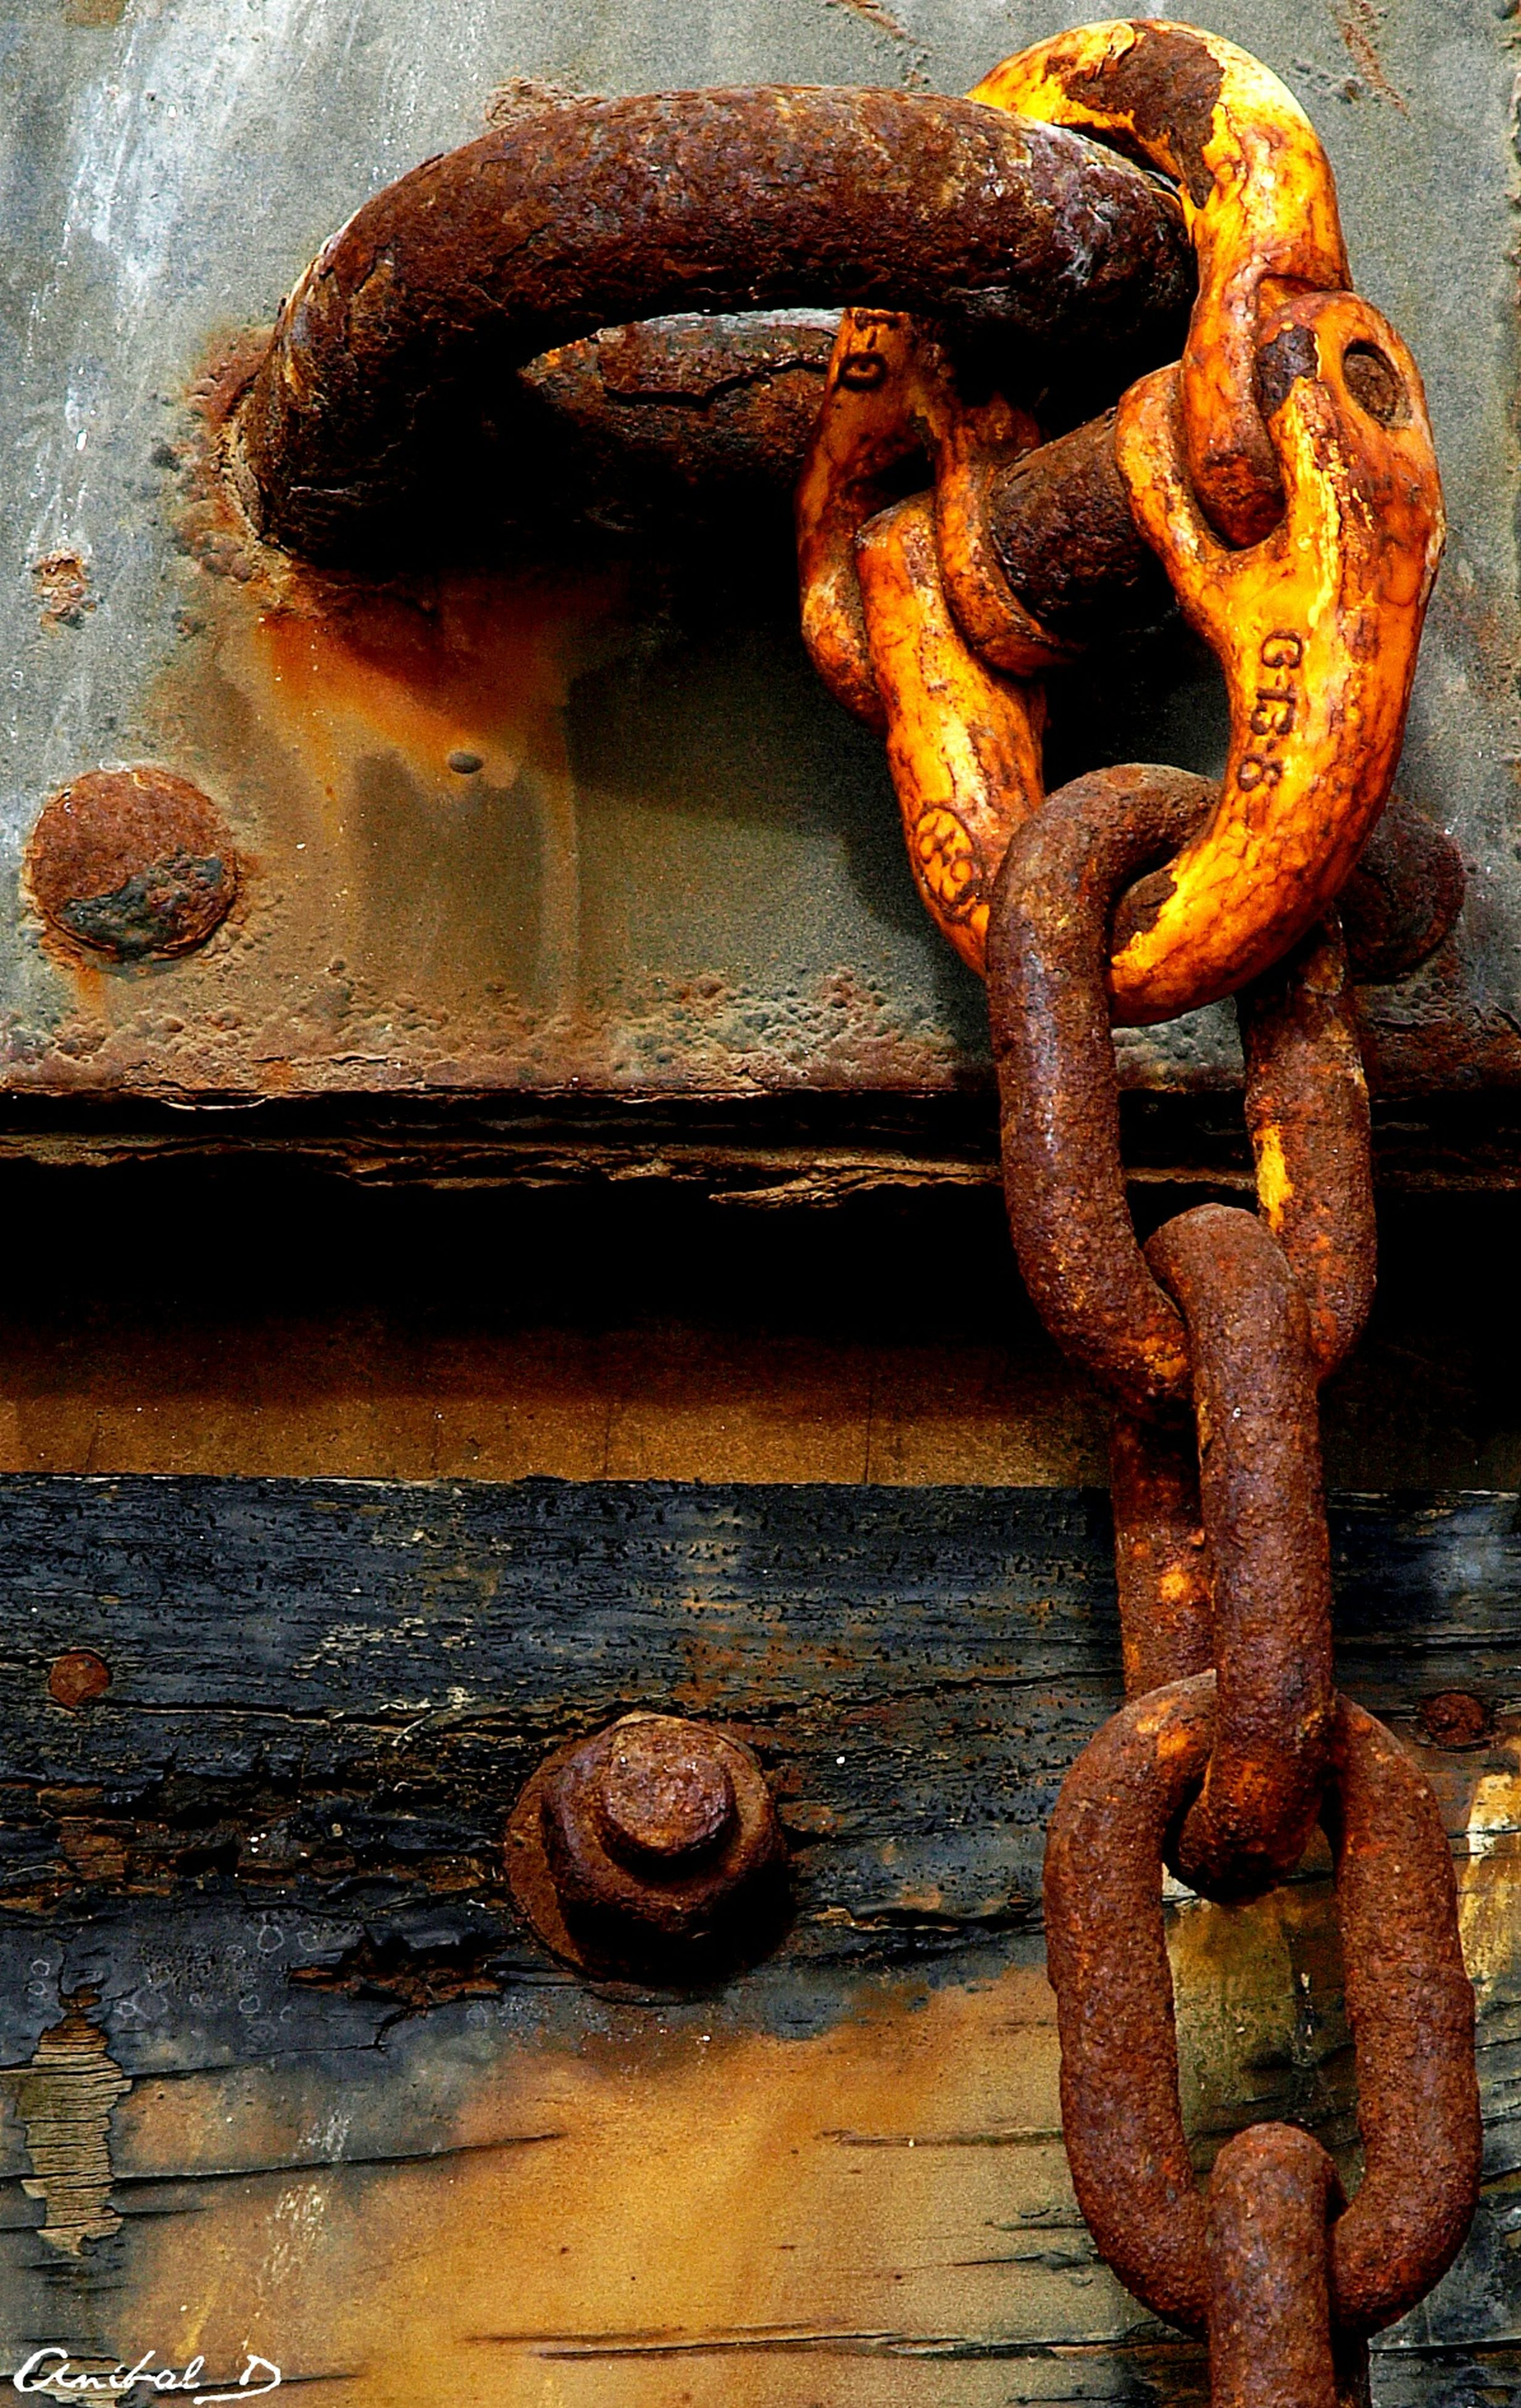 metal, rusty, metallic, weathered, old, close-up, chain, deterioration, strength, run-down, iron - metal, security, safety, door, protection, padlock, connection, full frame, damaged, outdoors